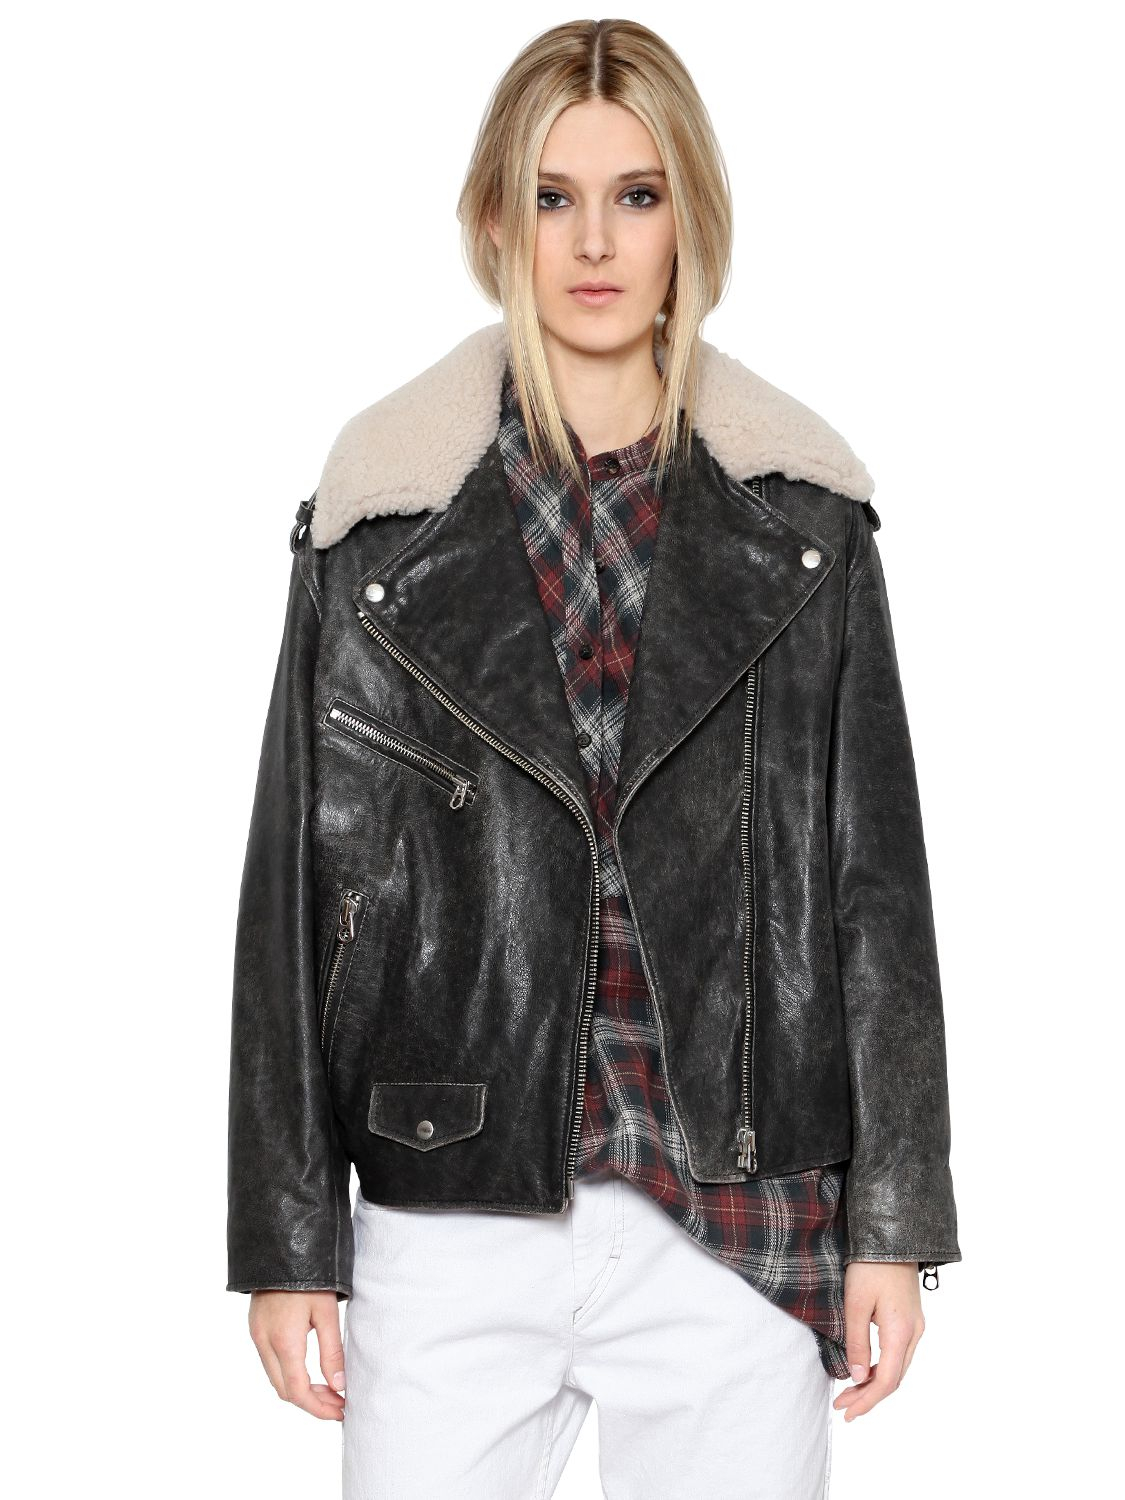 Etoile Isabel Marant Leather Jacket With Shearling Collar